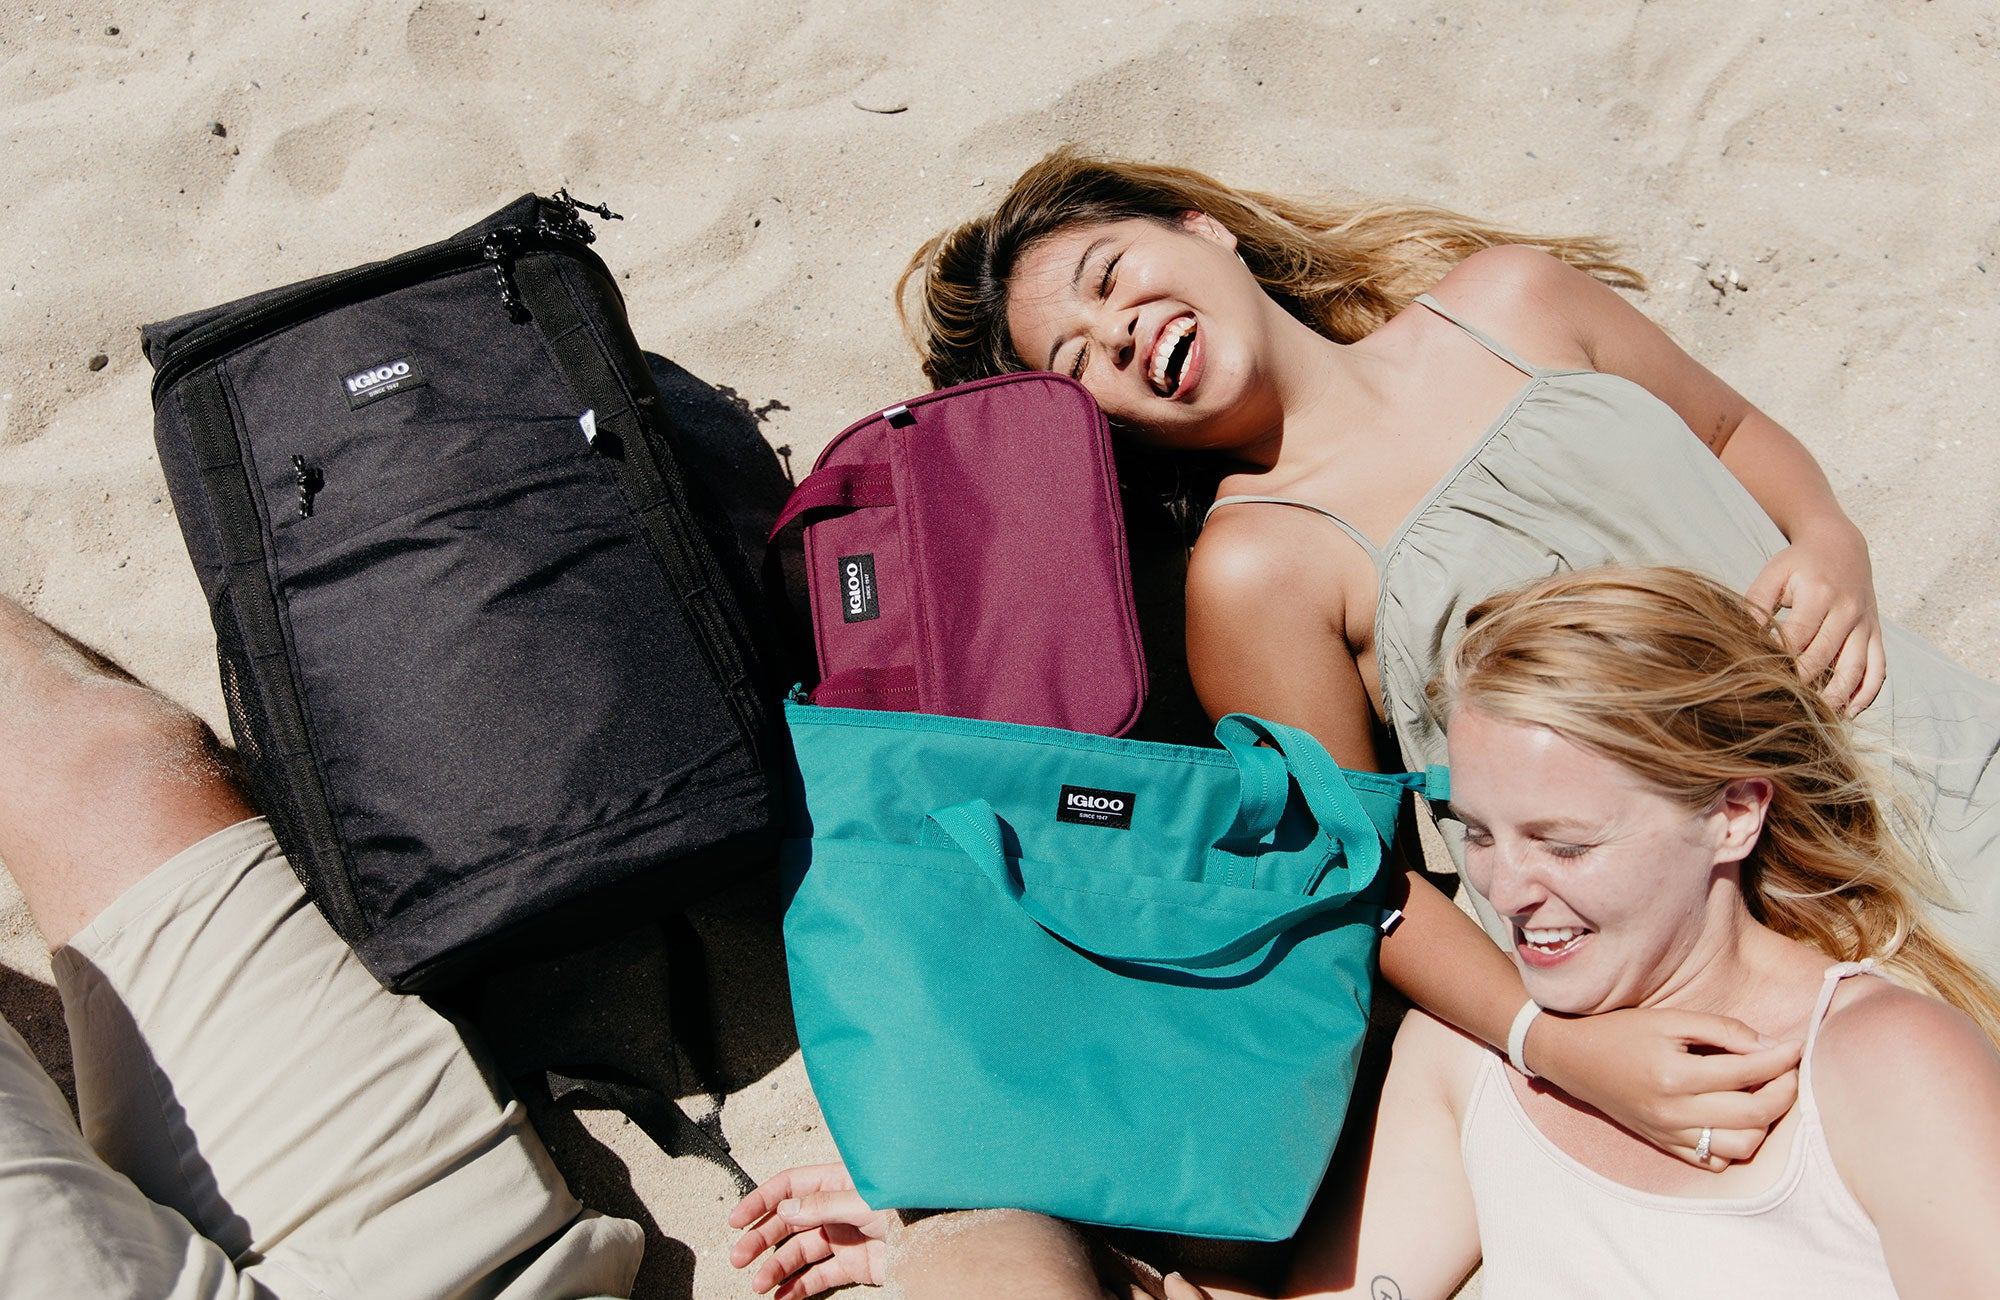 REPREVE™: From Recycled Plastic Bottles to Eco-Friendly Cooler